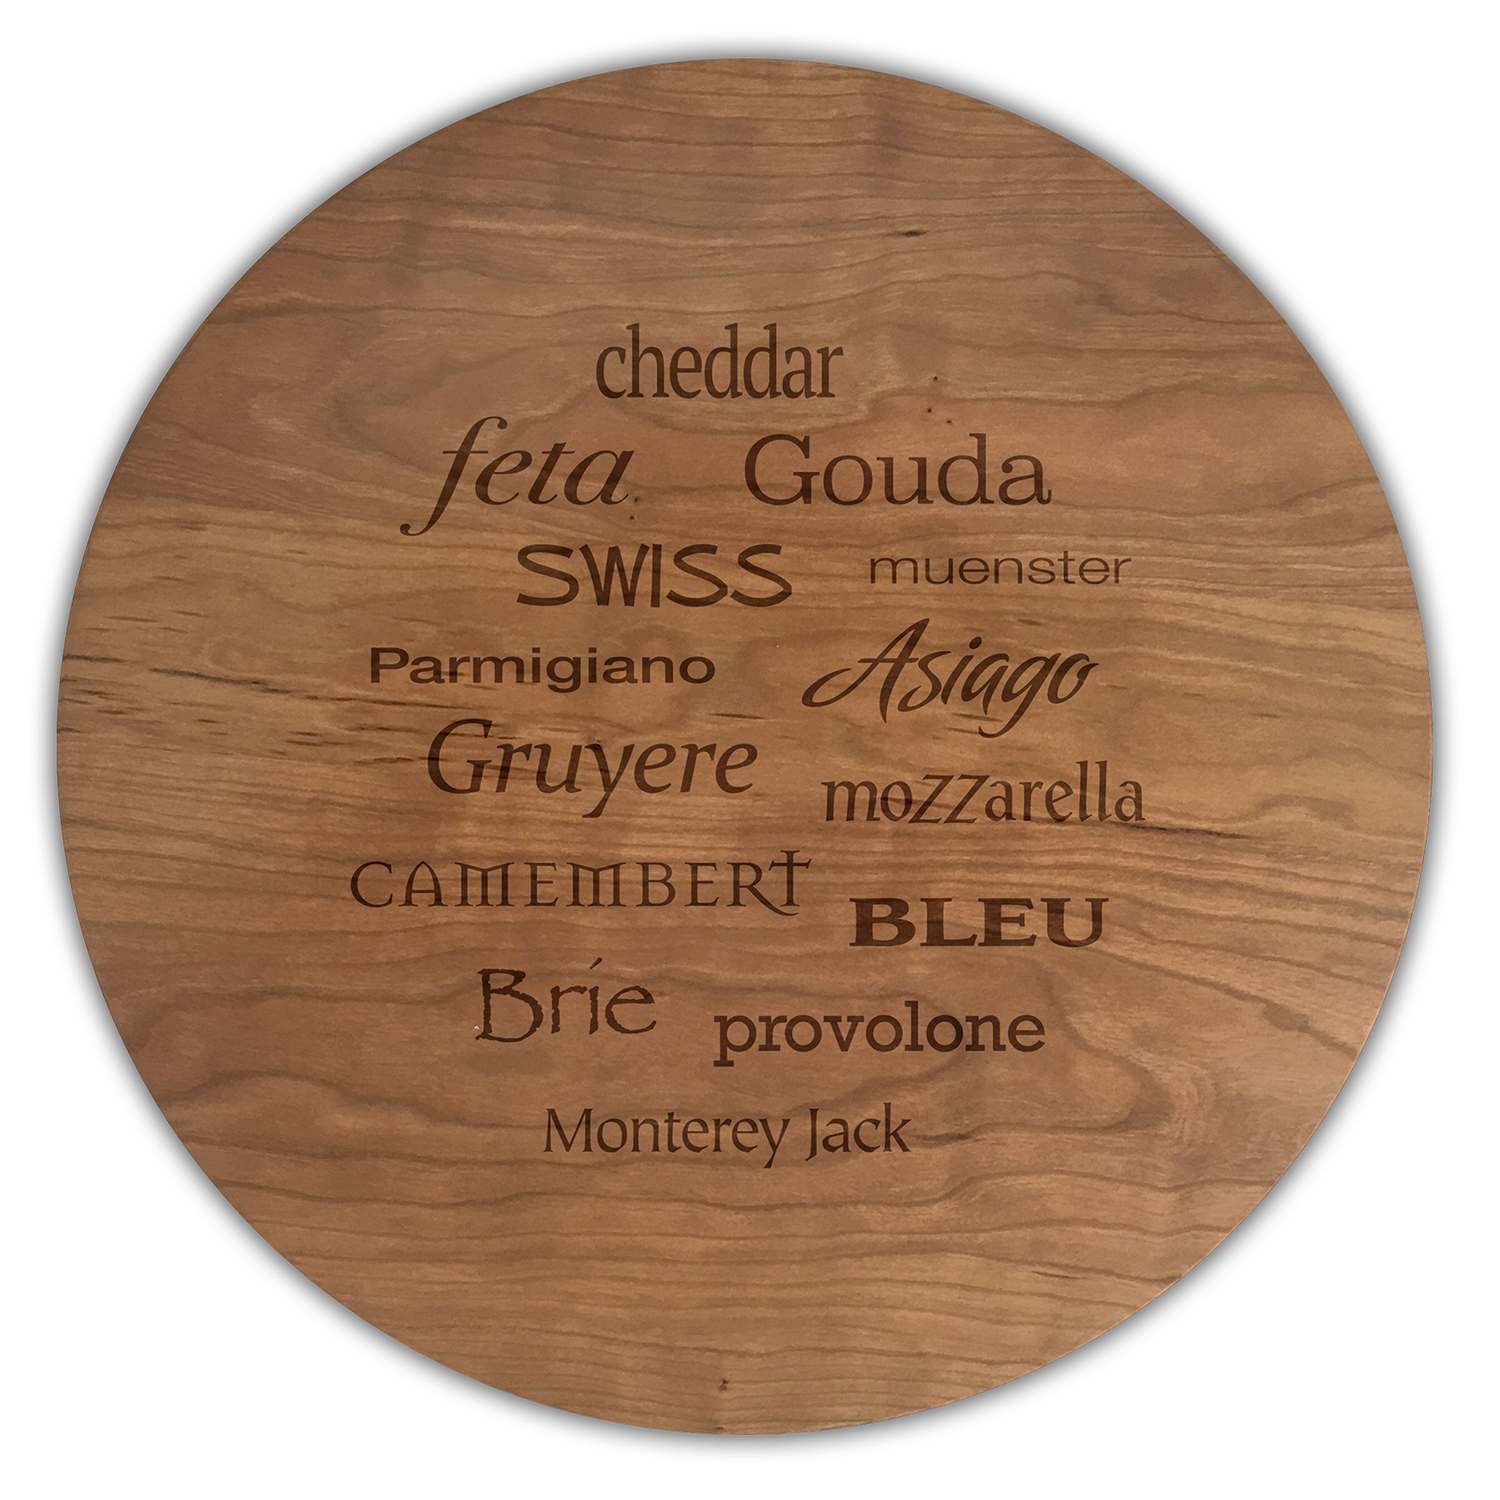 A Taste for Cheese Round Cheese Board